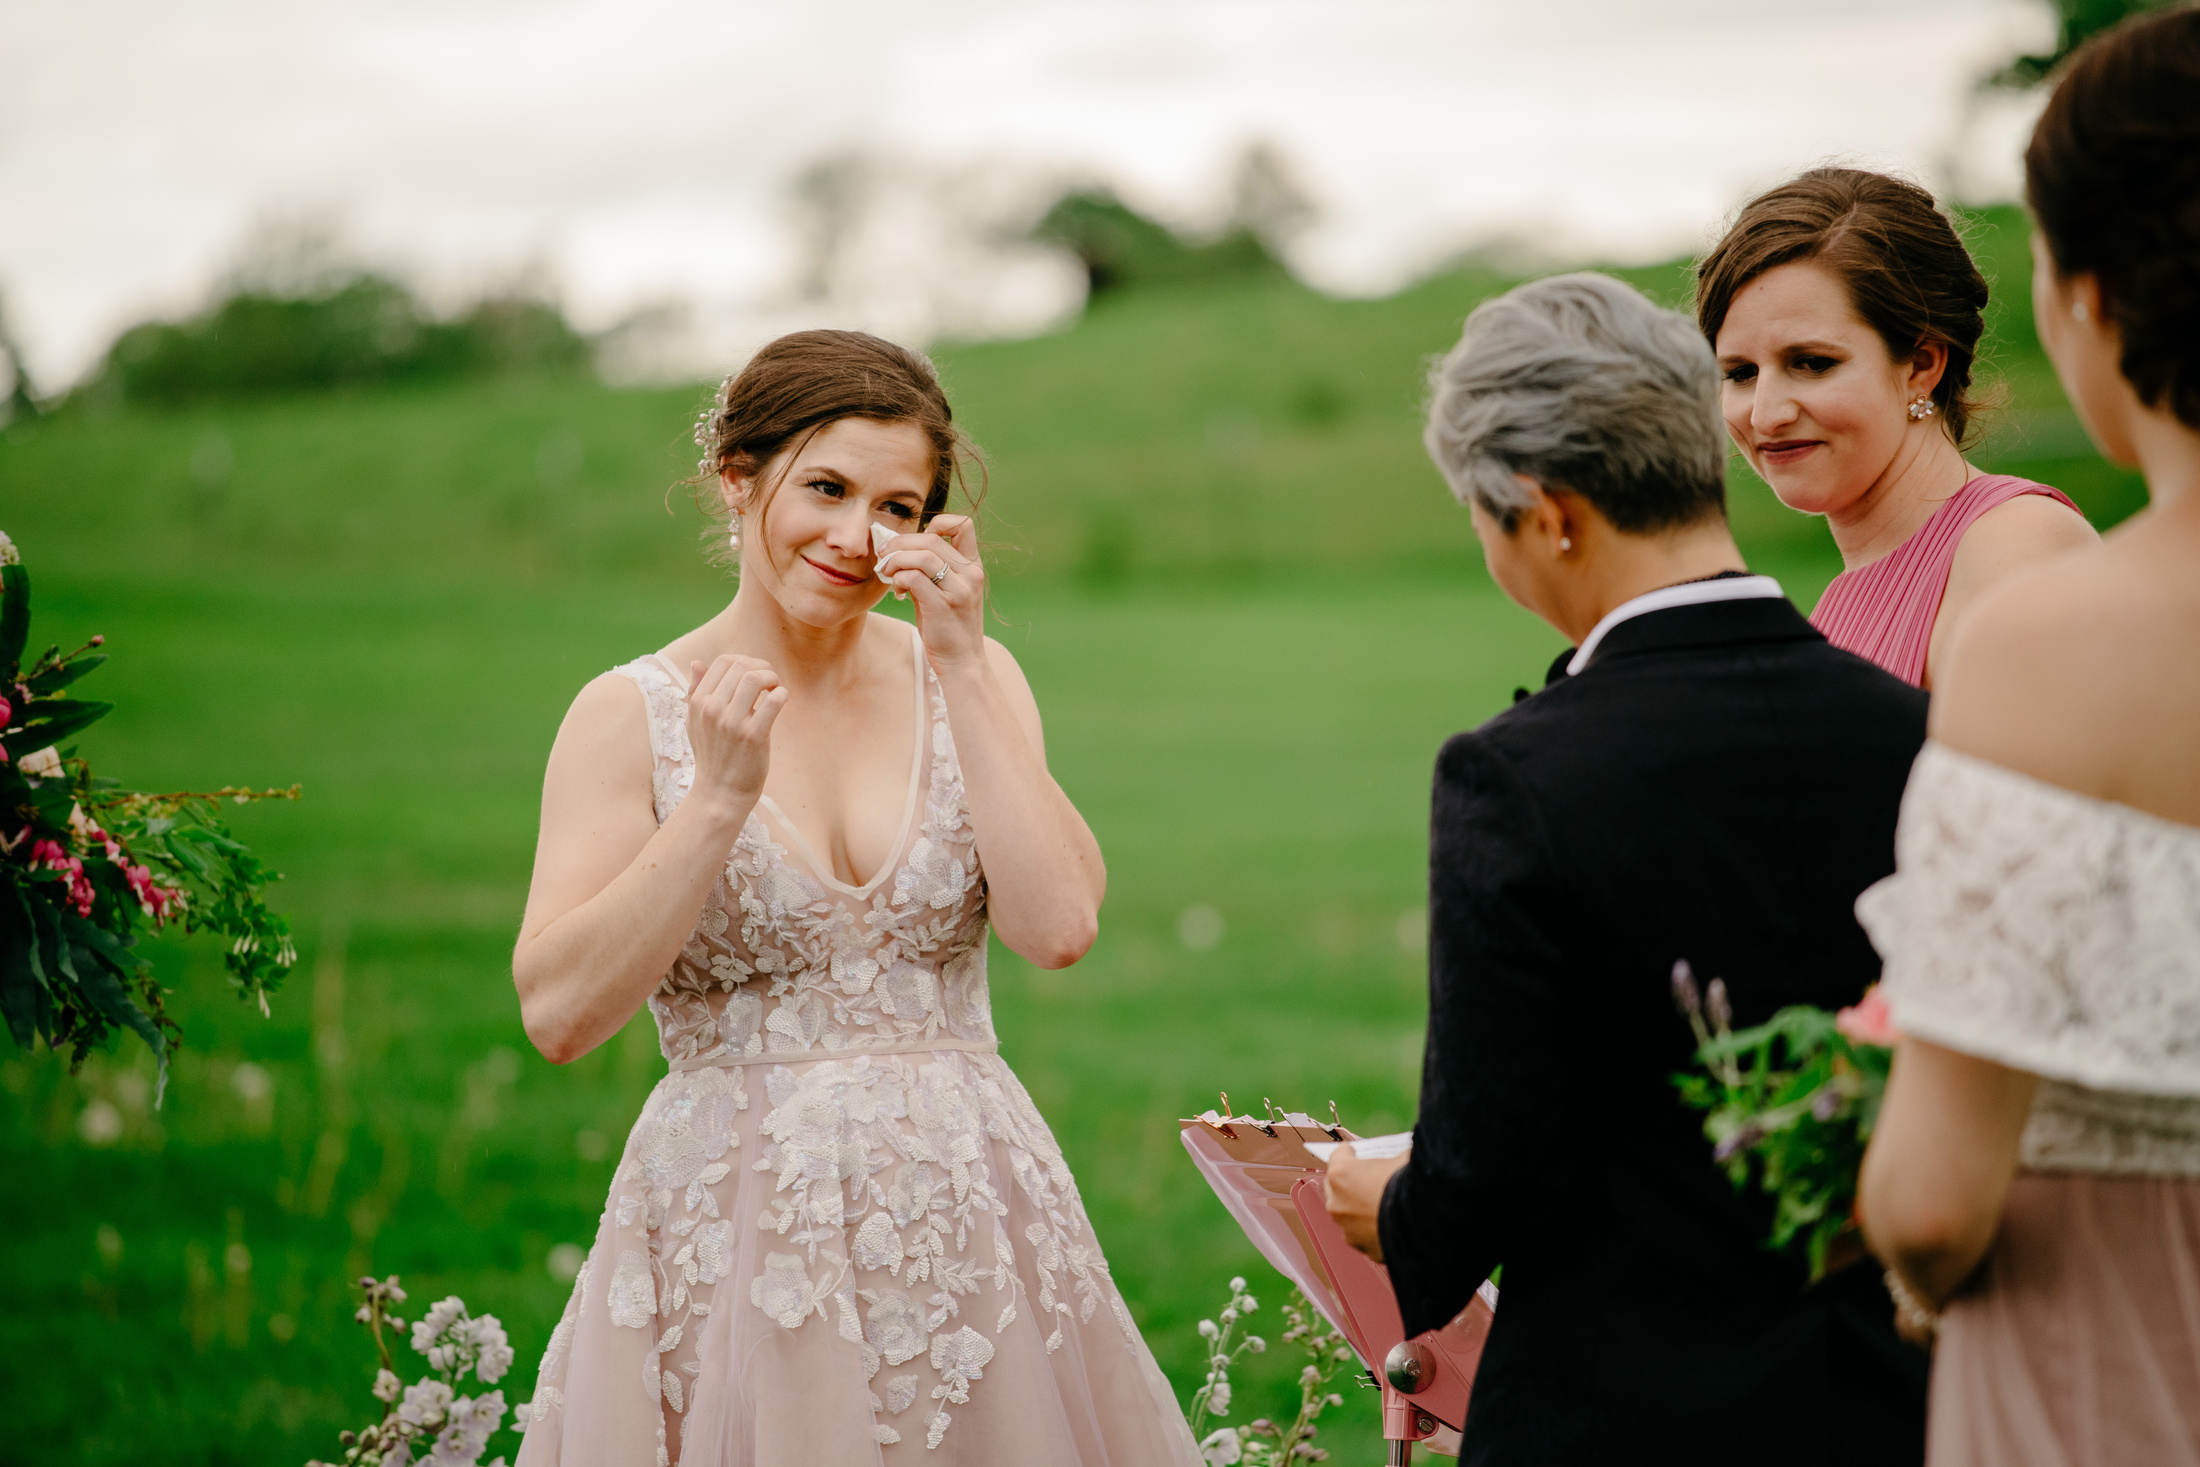 sweet and emotional wedding moments at gibbet hill barn in groton during the ceremony